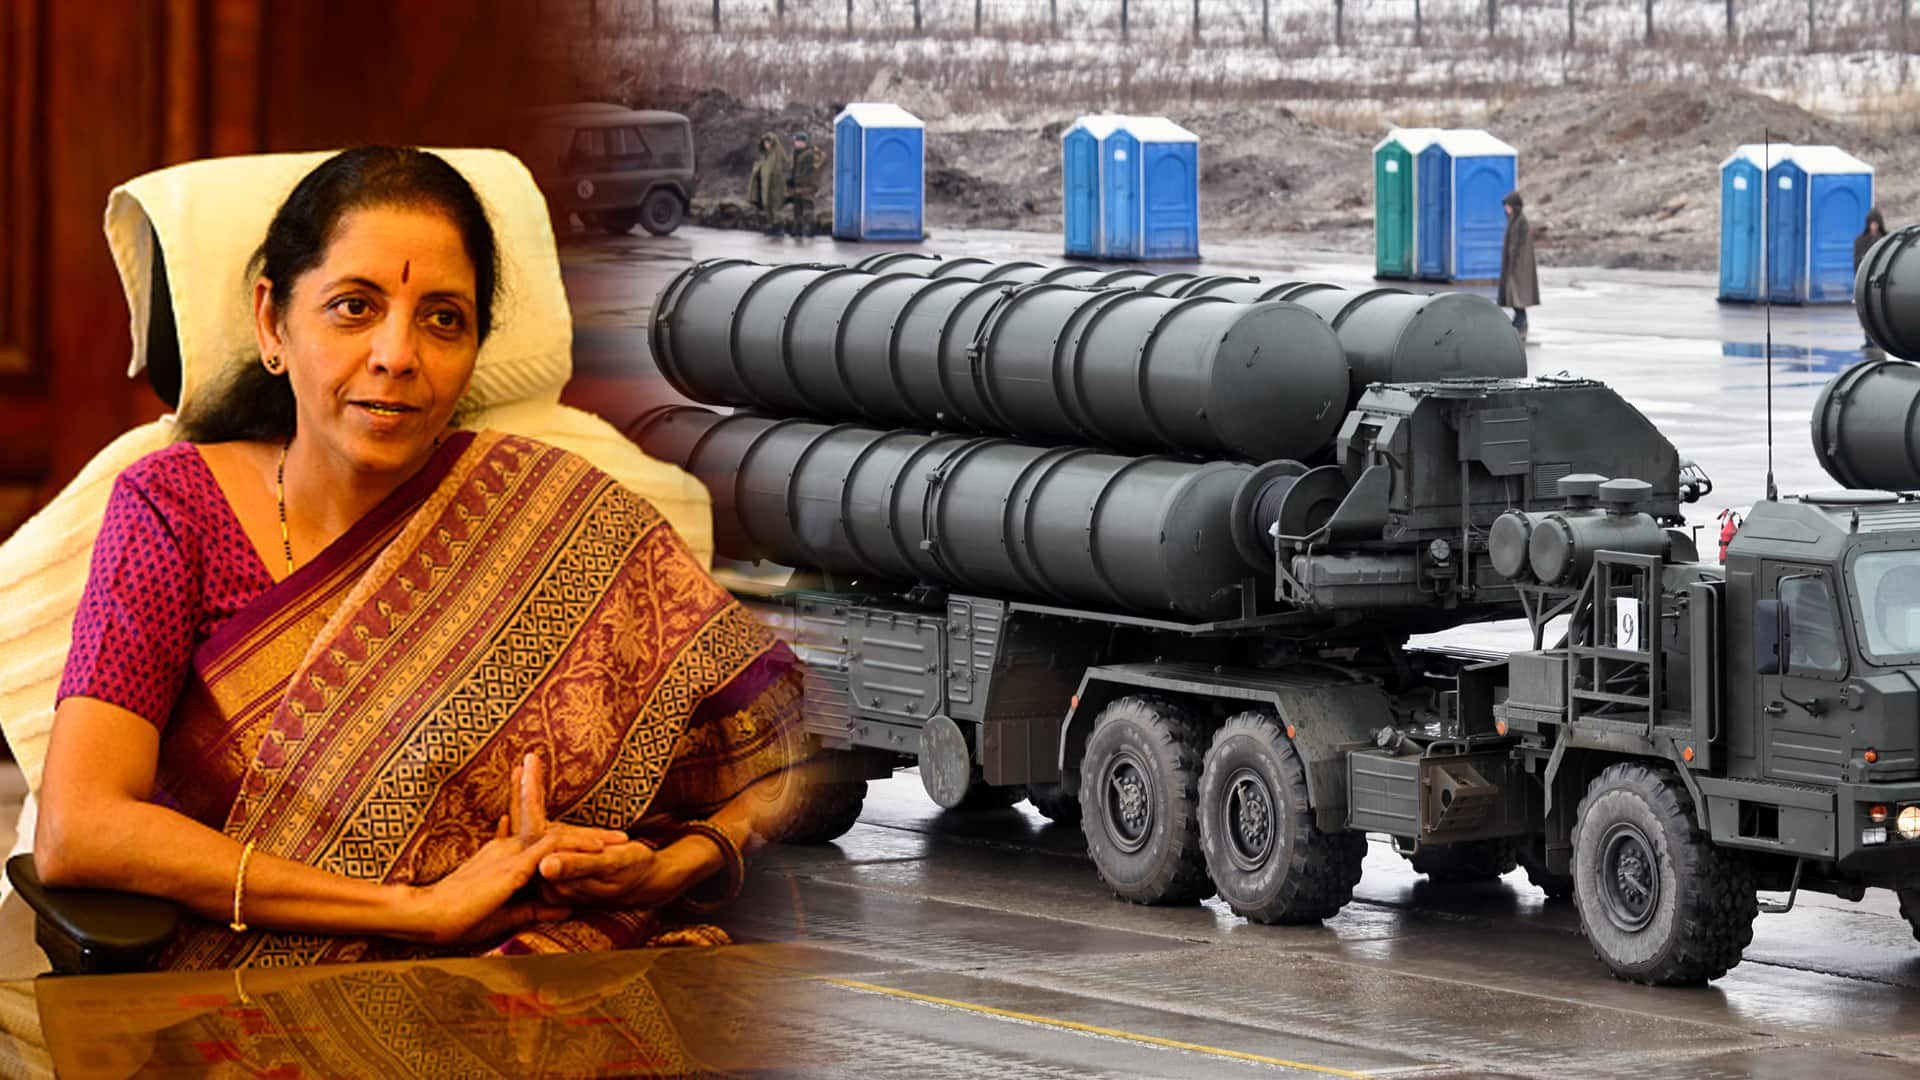 Indian S-400 missile system is more capable than Chinese system: IAF sources